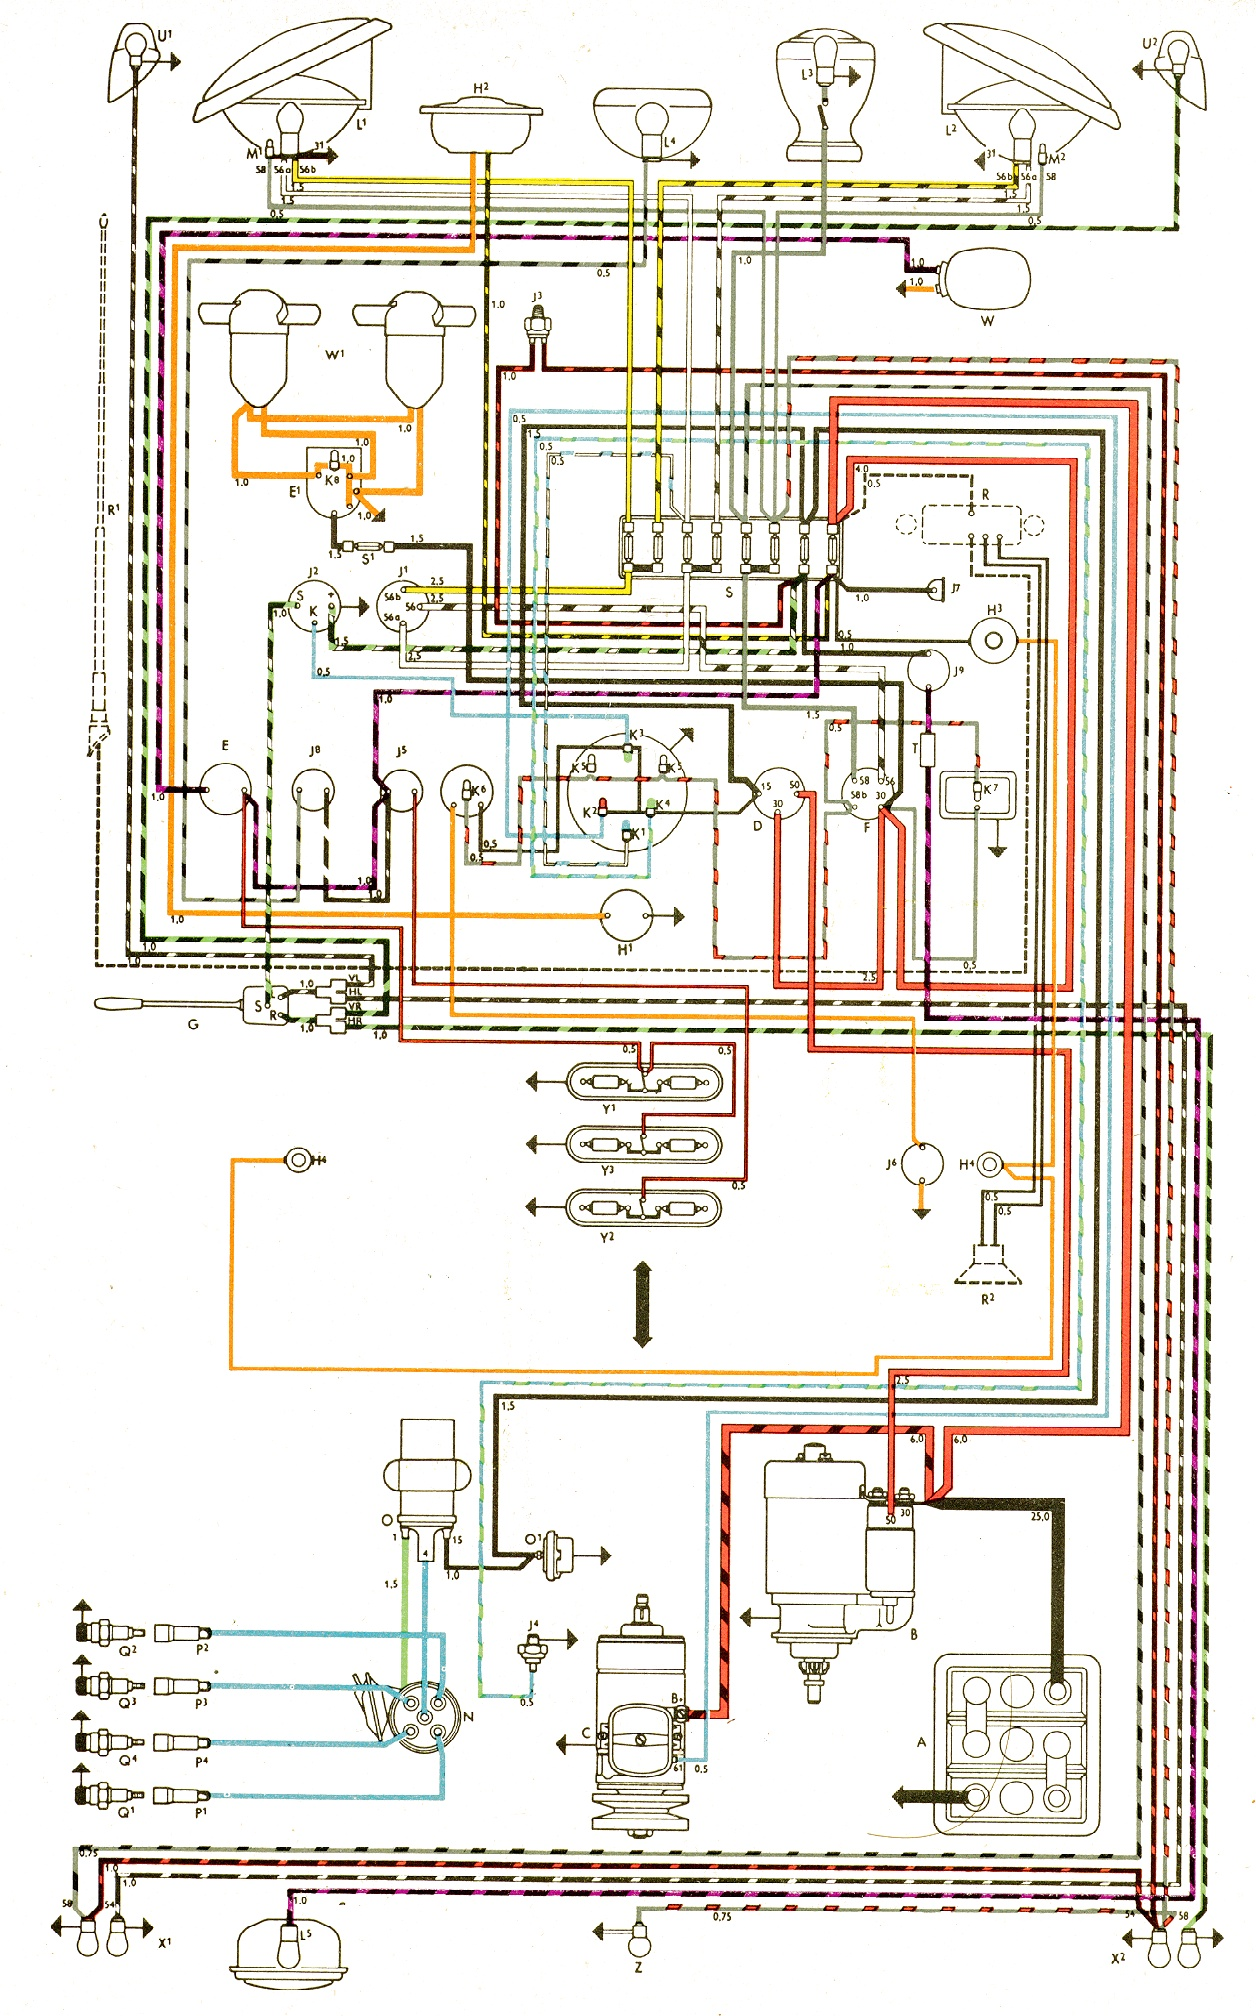 bus 62 bus wiring diagram vw wiring harness diagram \u2022 wiring diagrams j 1965 vw bus wiring harness at mifinder.co